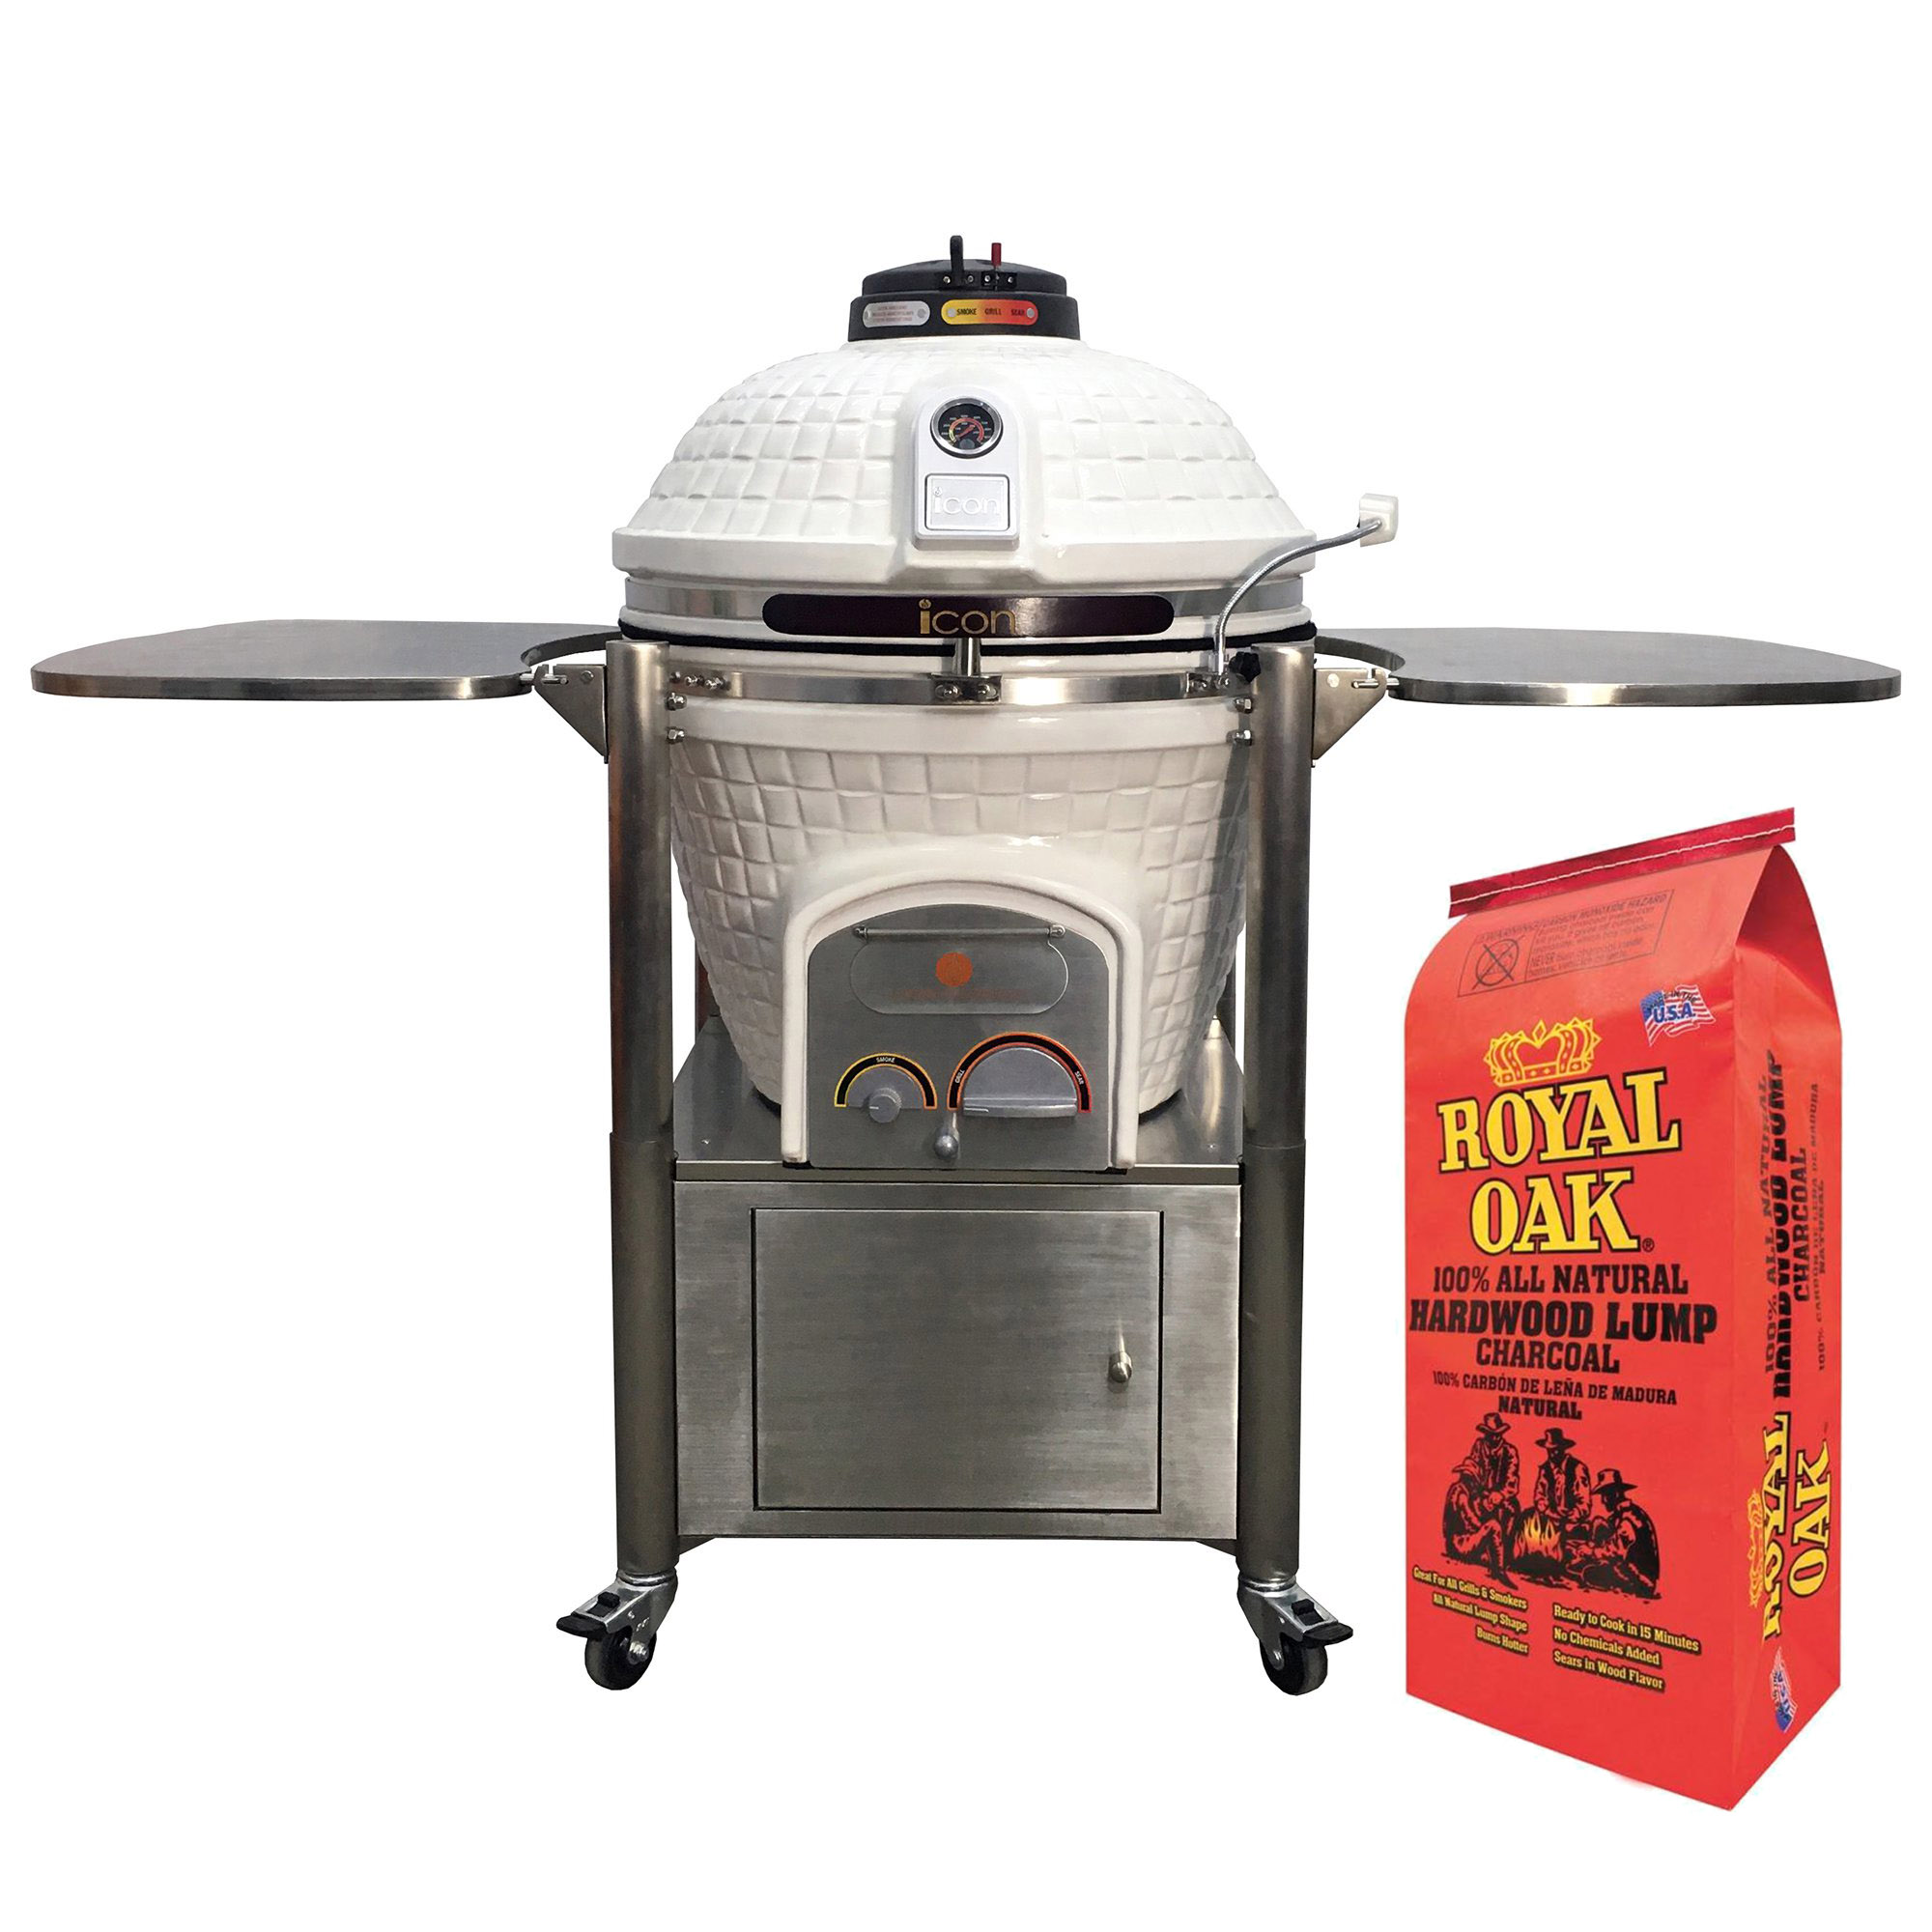 Icon Grills 800 Series 714 Sq In Black Kamado Grill with Royal Oak Lump Charcoal